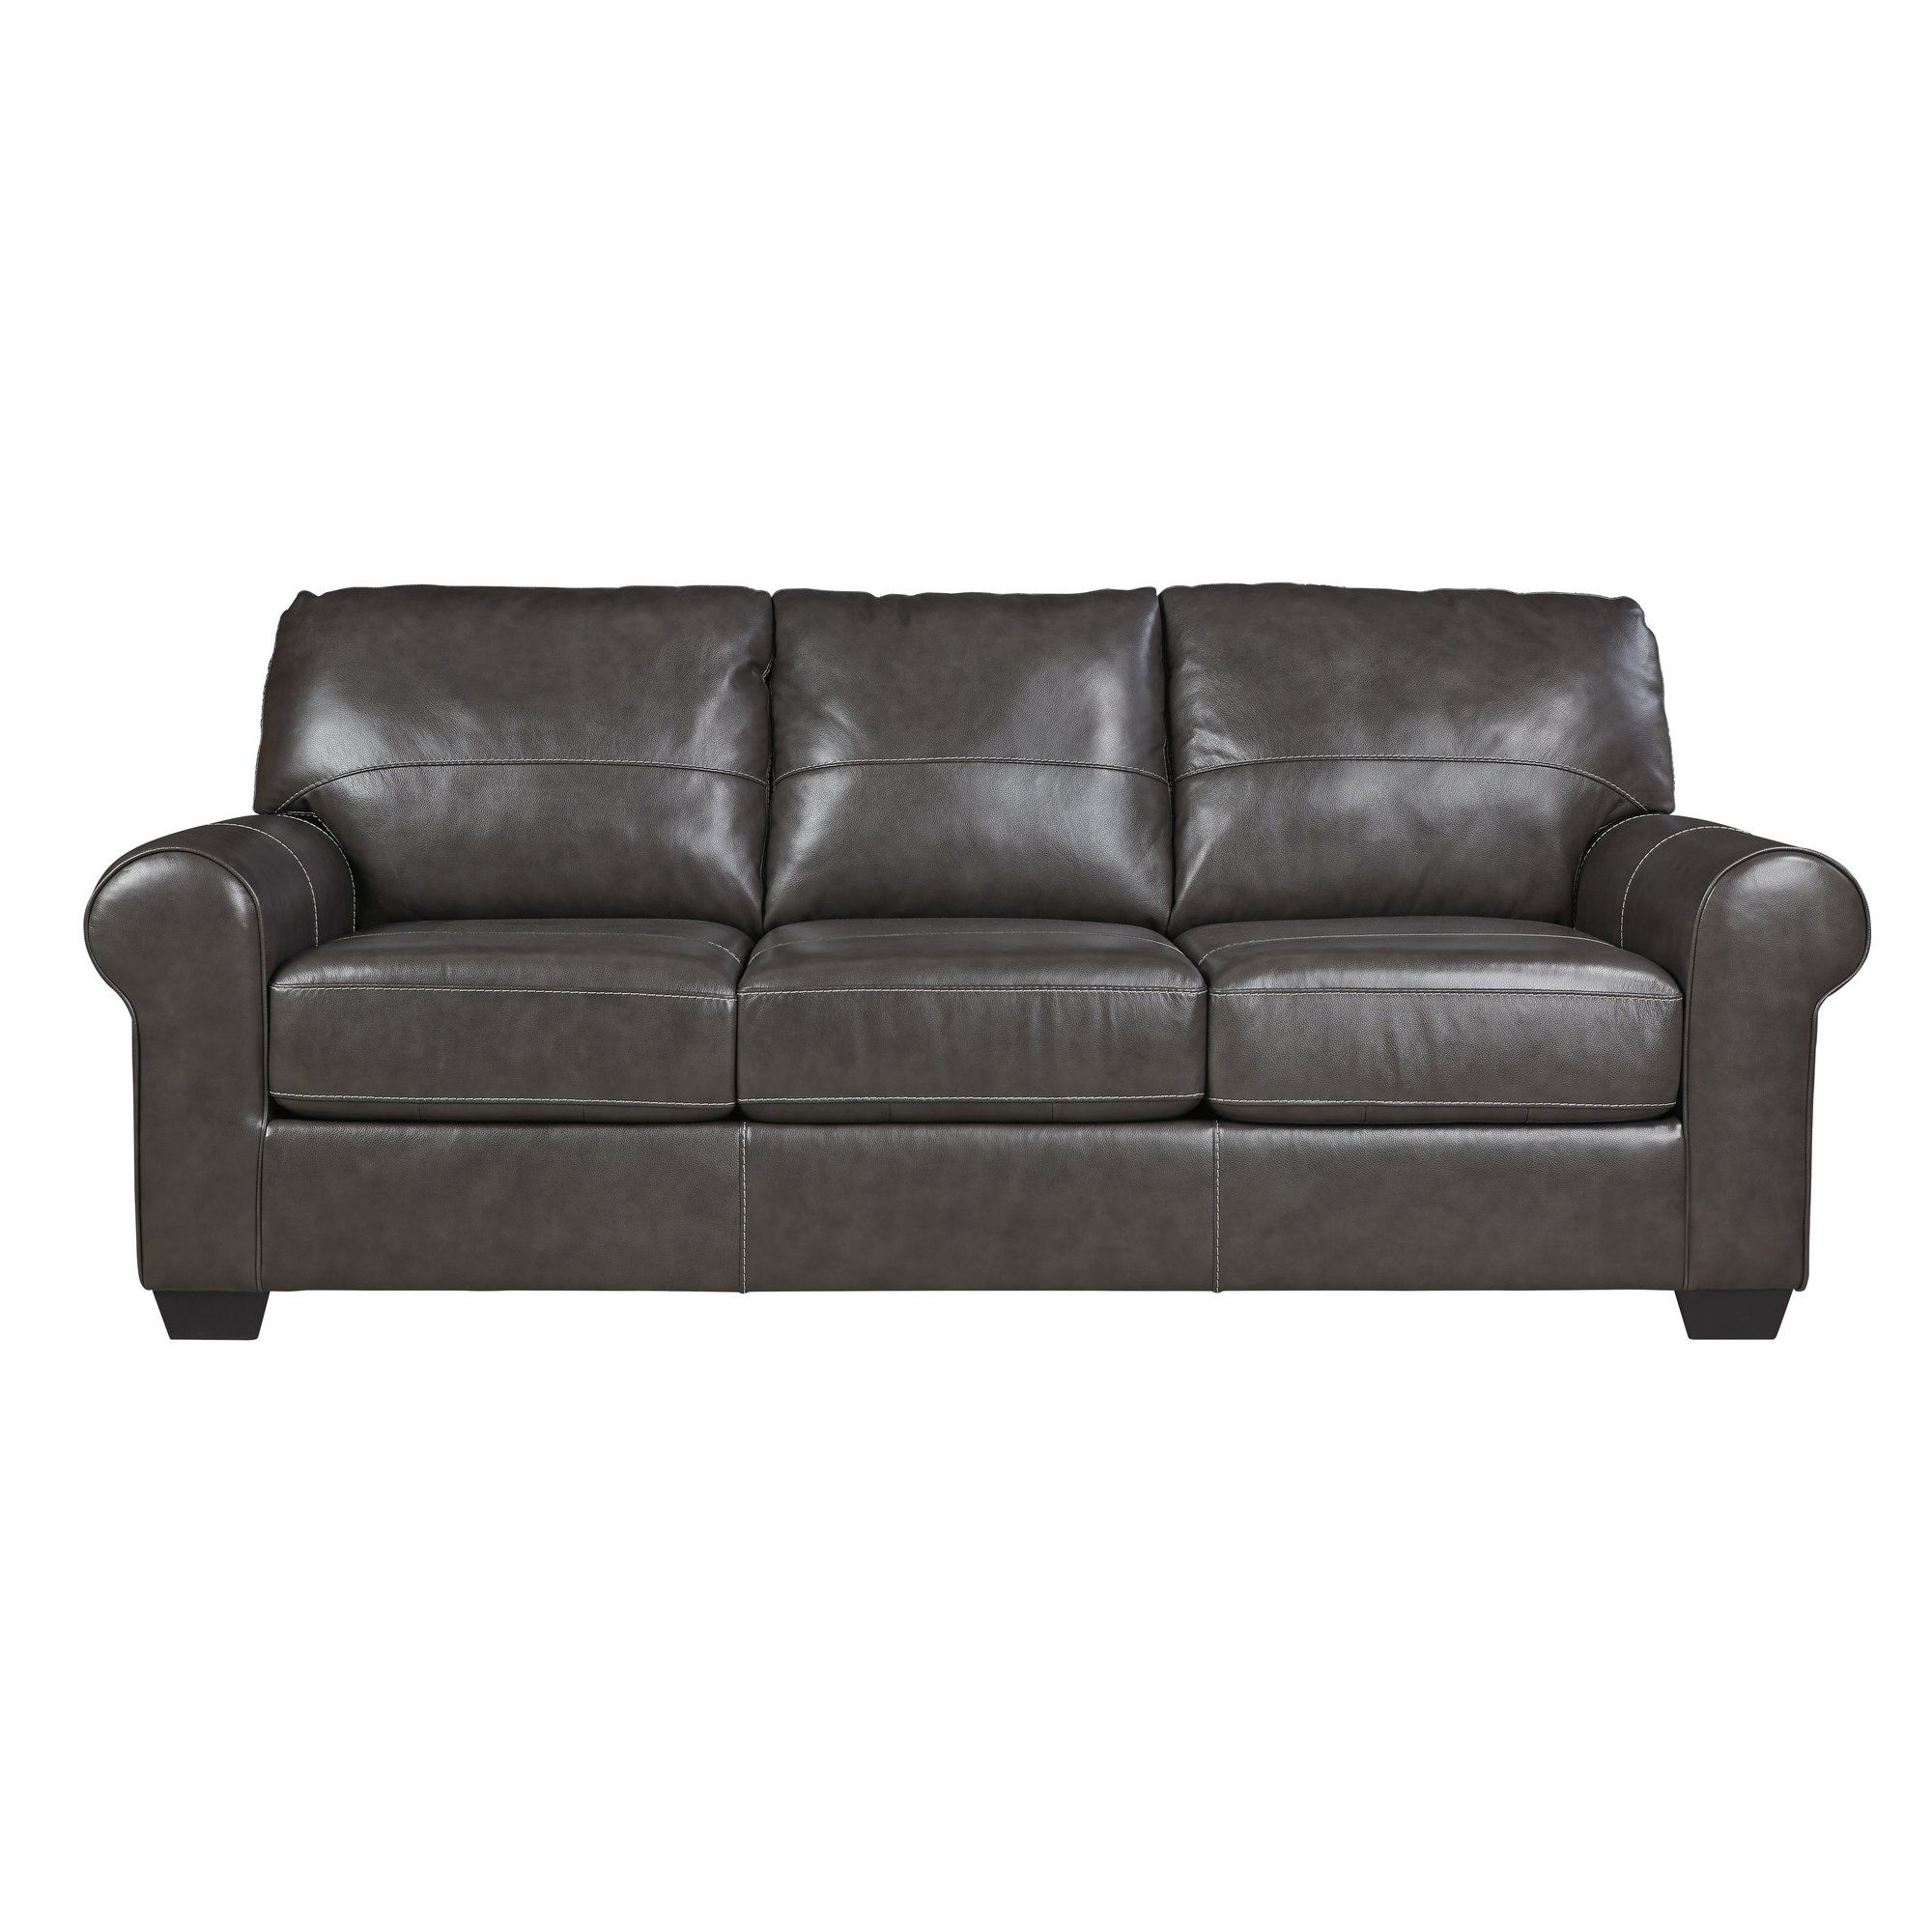 Bacall Sofa Ashley Furniture Living Room Contemporary Leather